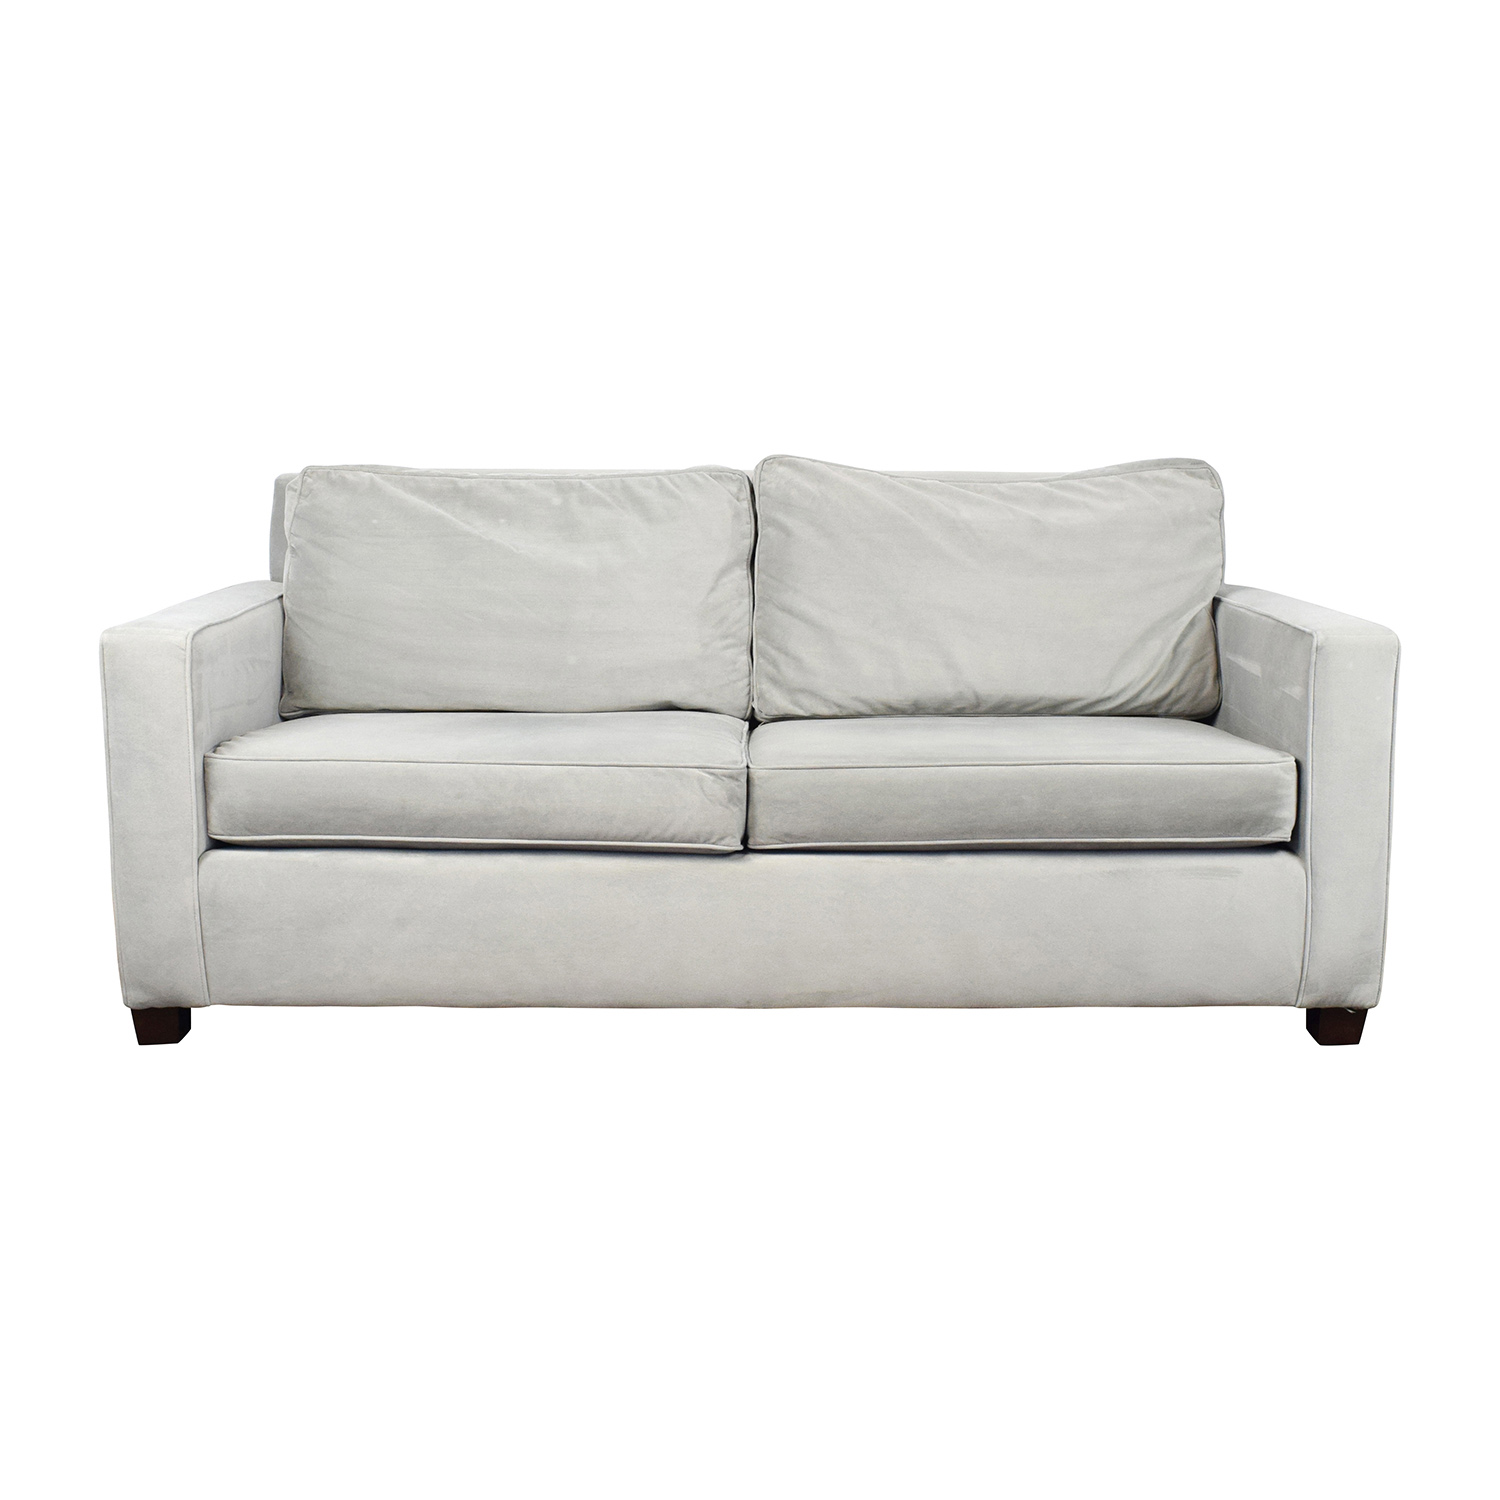 small sectional sofa west elm how do i clean microsuede shop baronet second hand